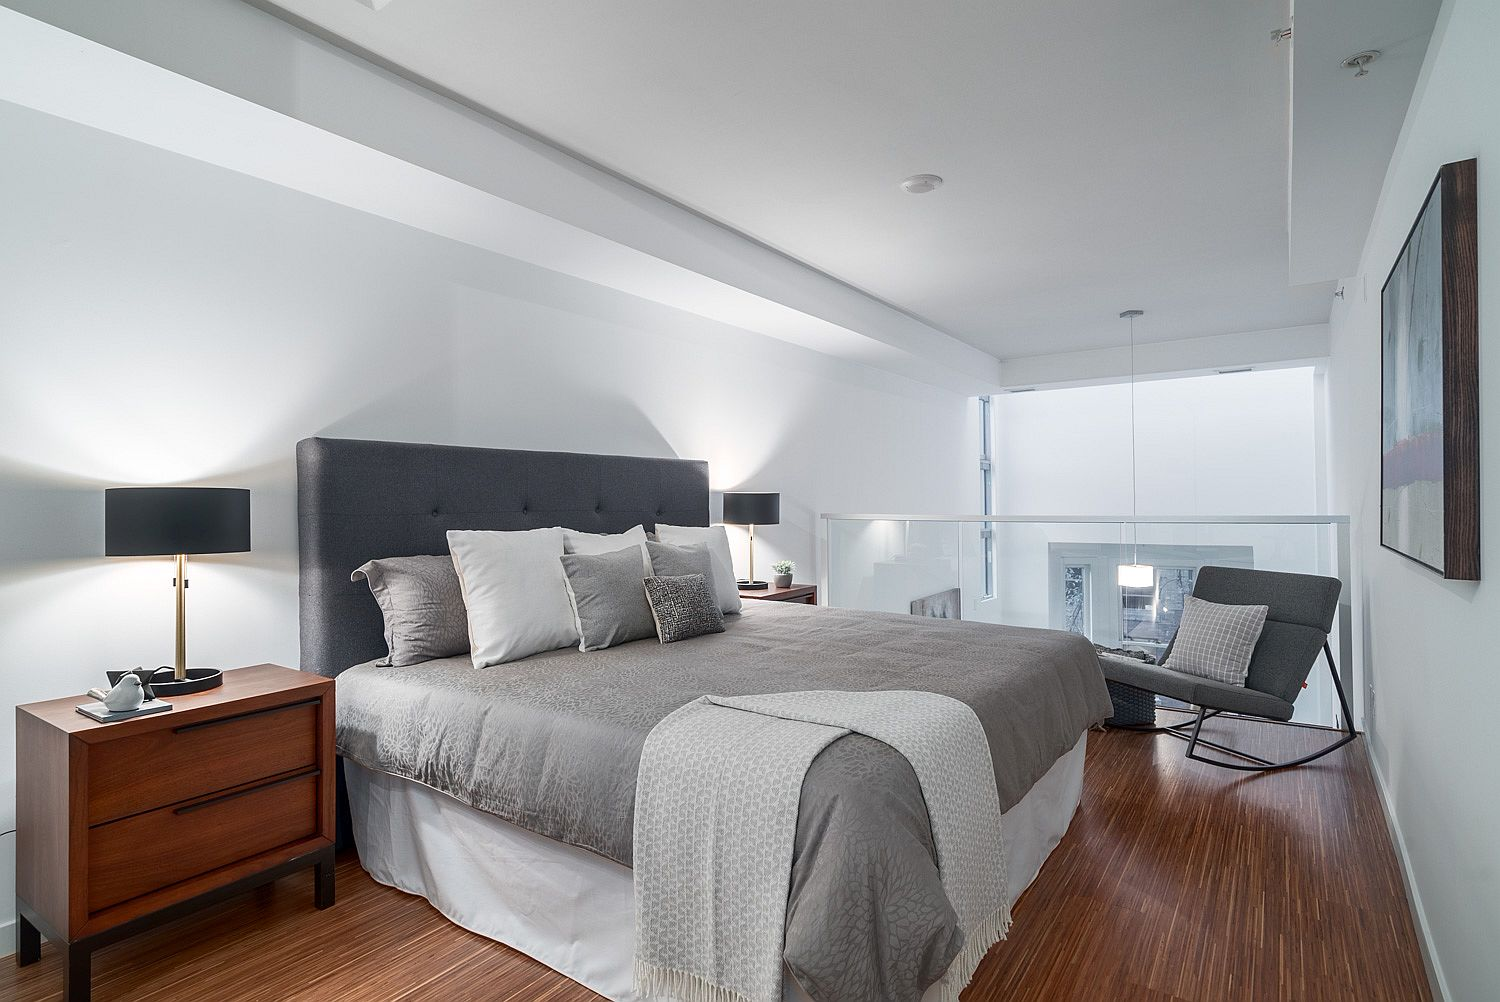 Top level master bedroom with a relaxing ambiance and neutral color scheme